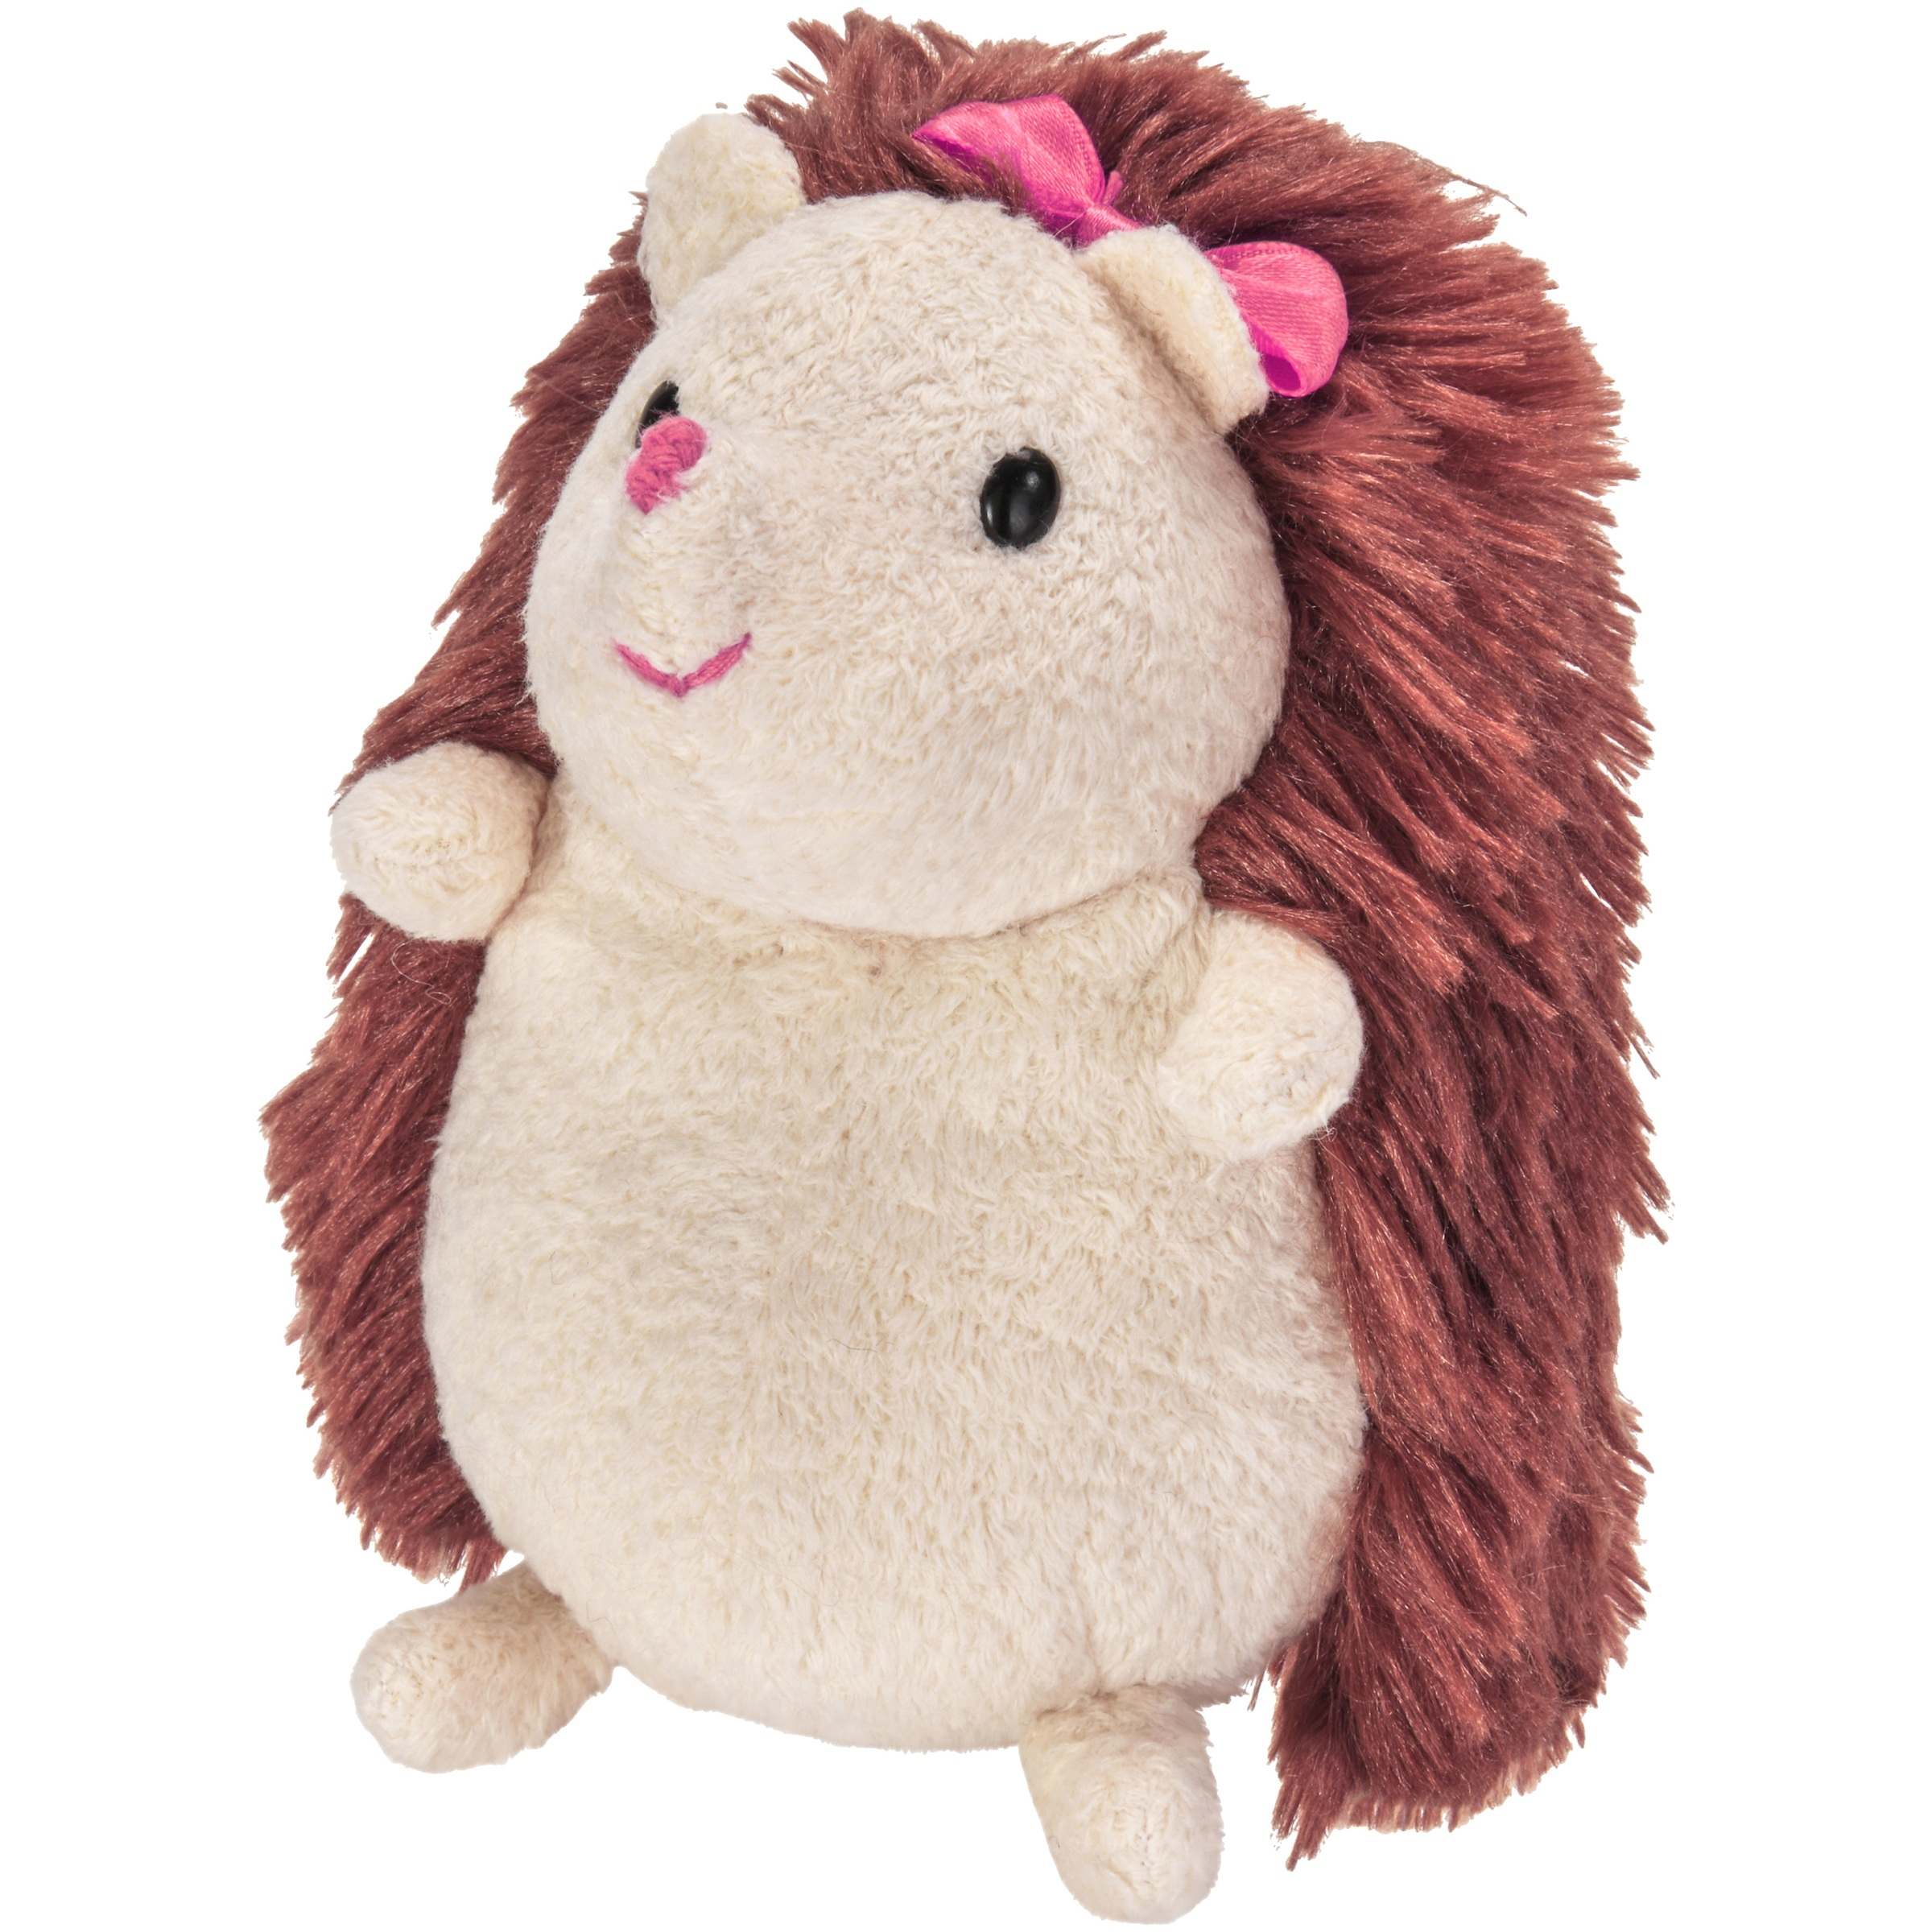 My Life As Plush Pet Hedgehog, Brown & Cream with Pink Accents